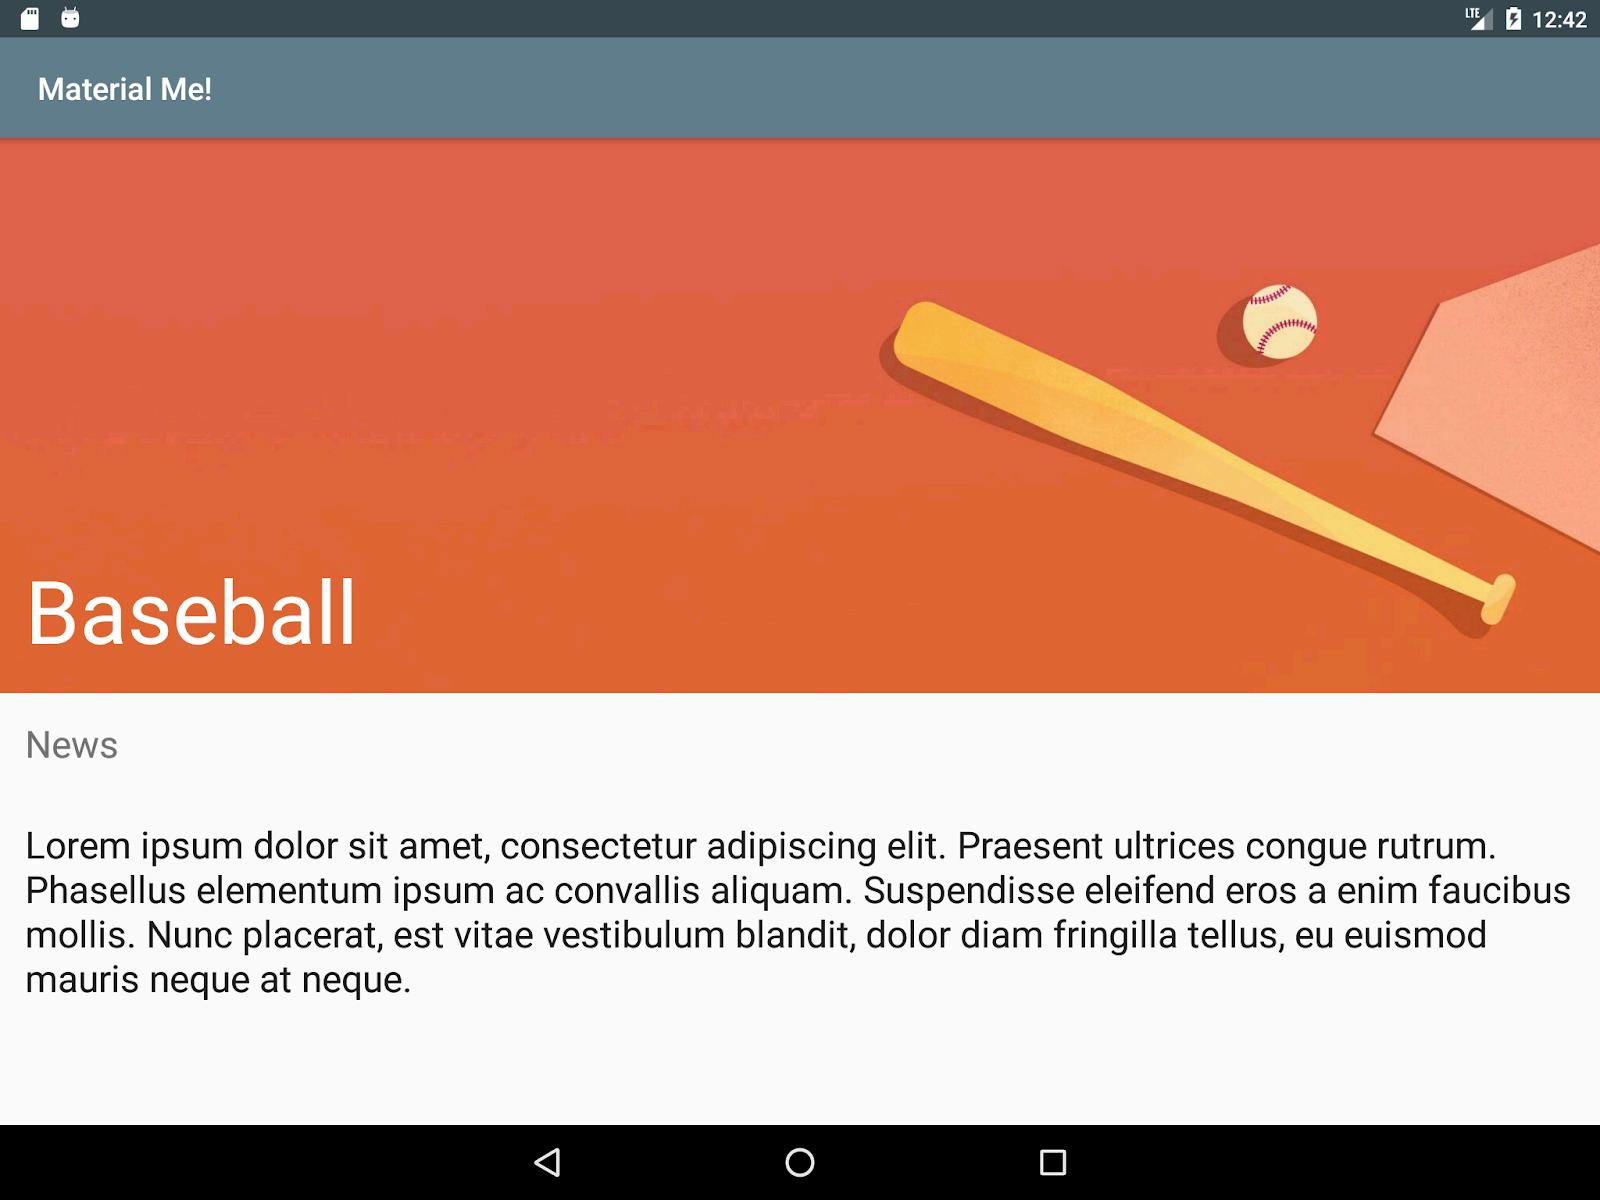 Tablet running the MaterialMe app with styles to make the text larger